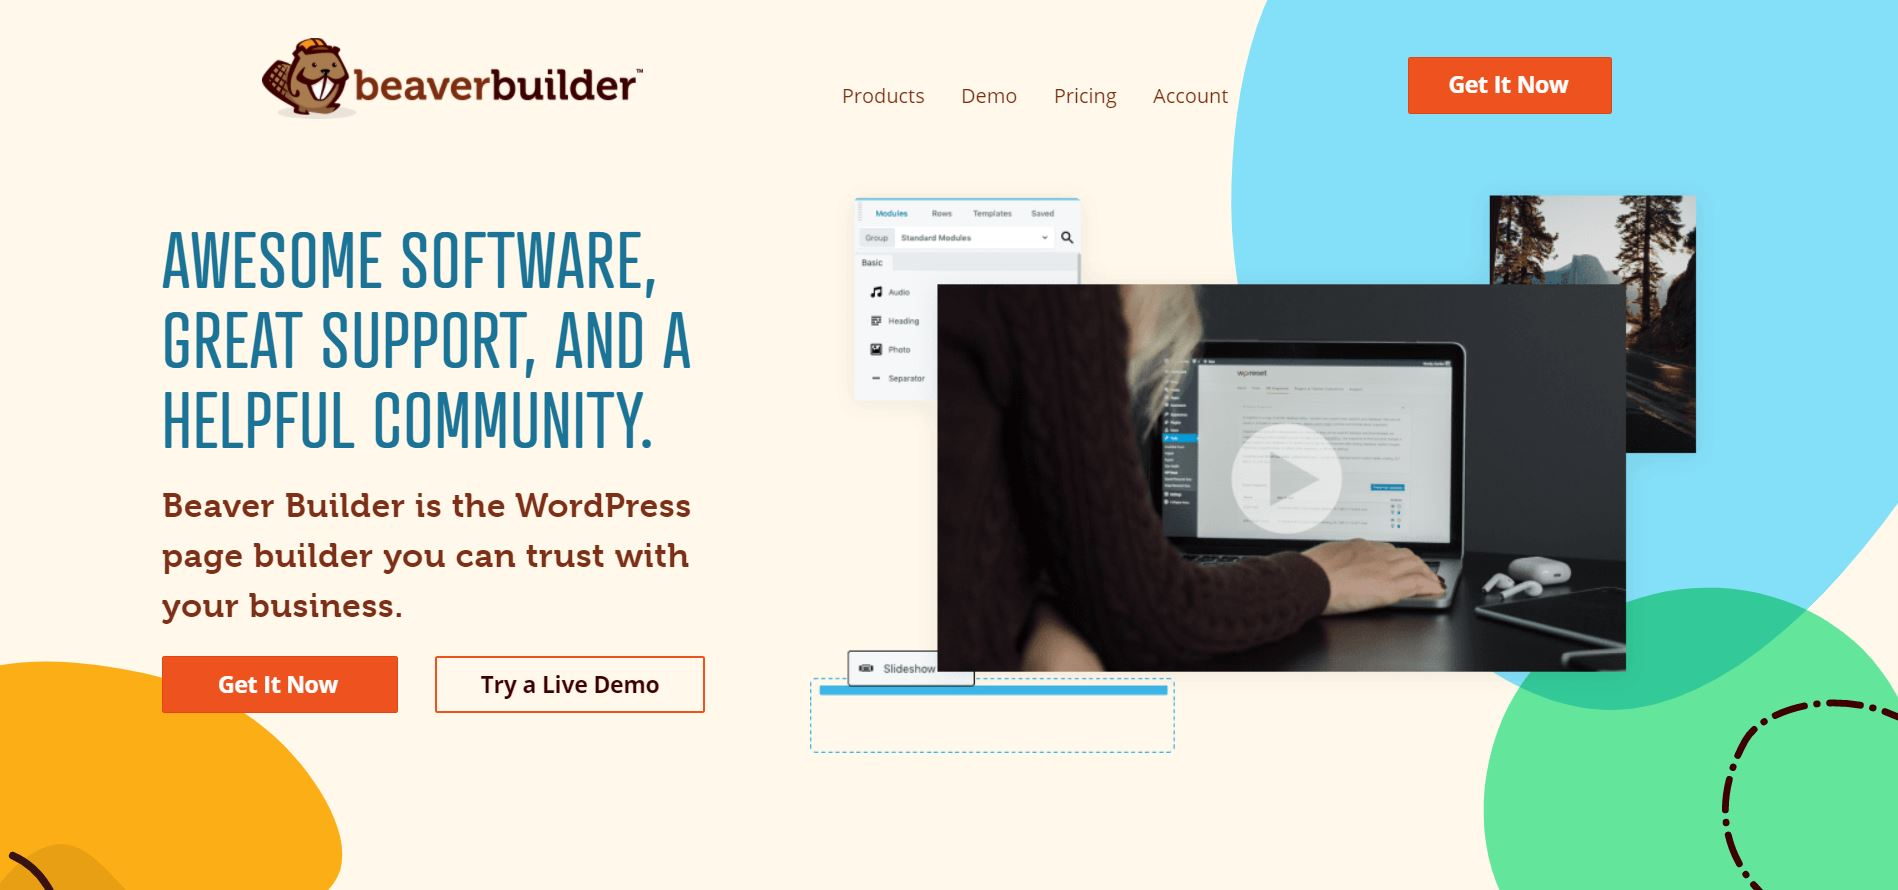 Beaver Builder- Review of One of the Popular WordPress Page Builder (2021)